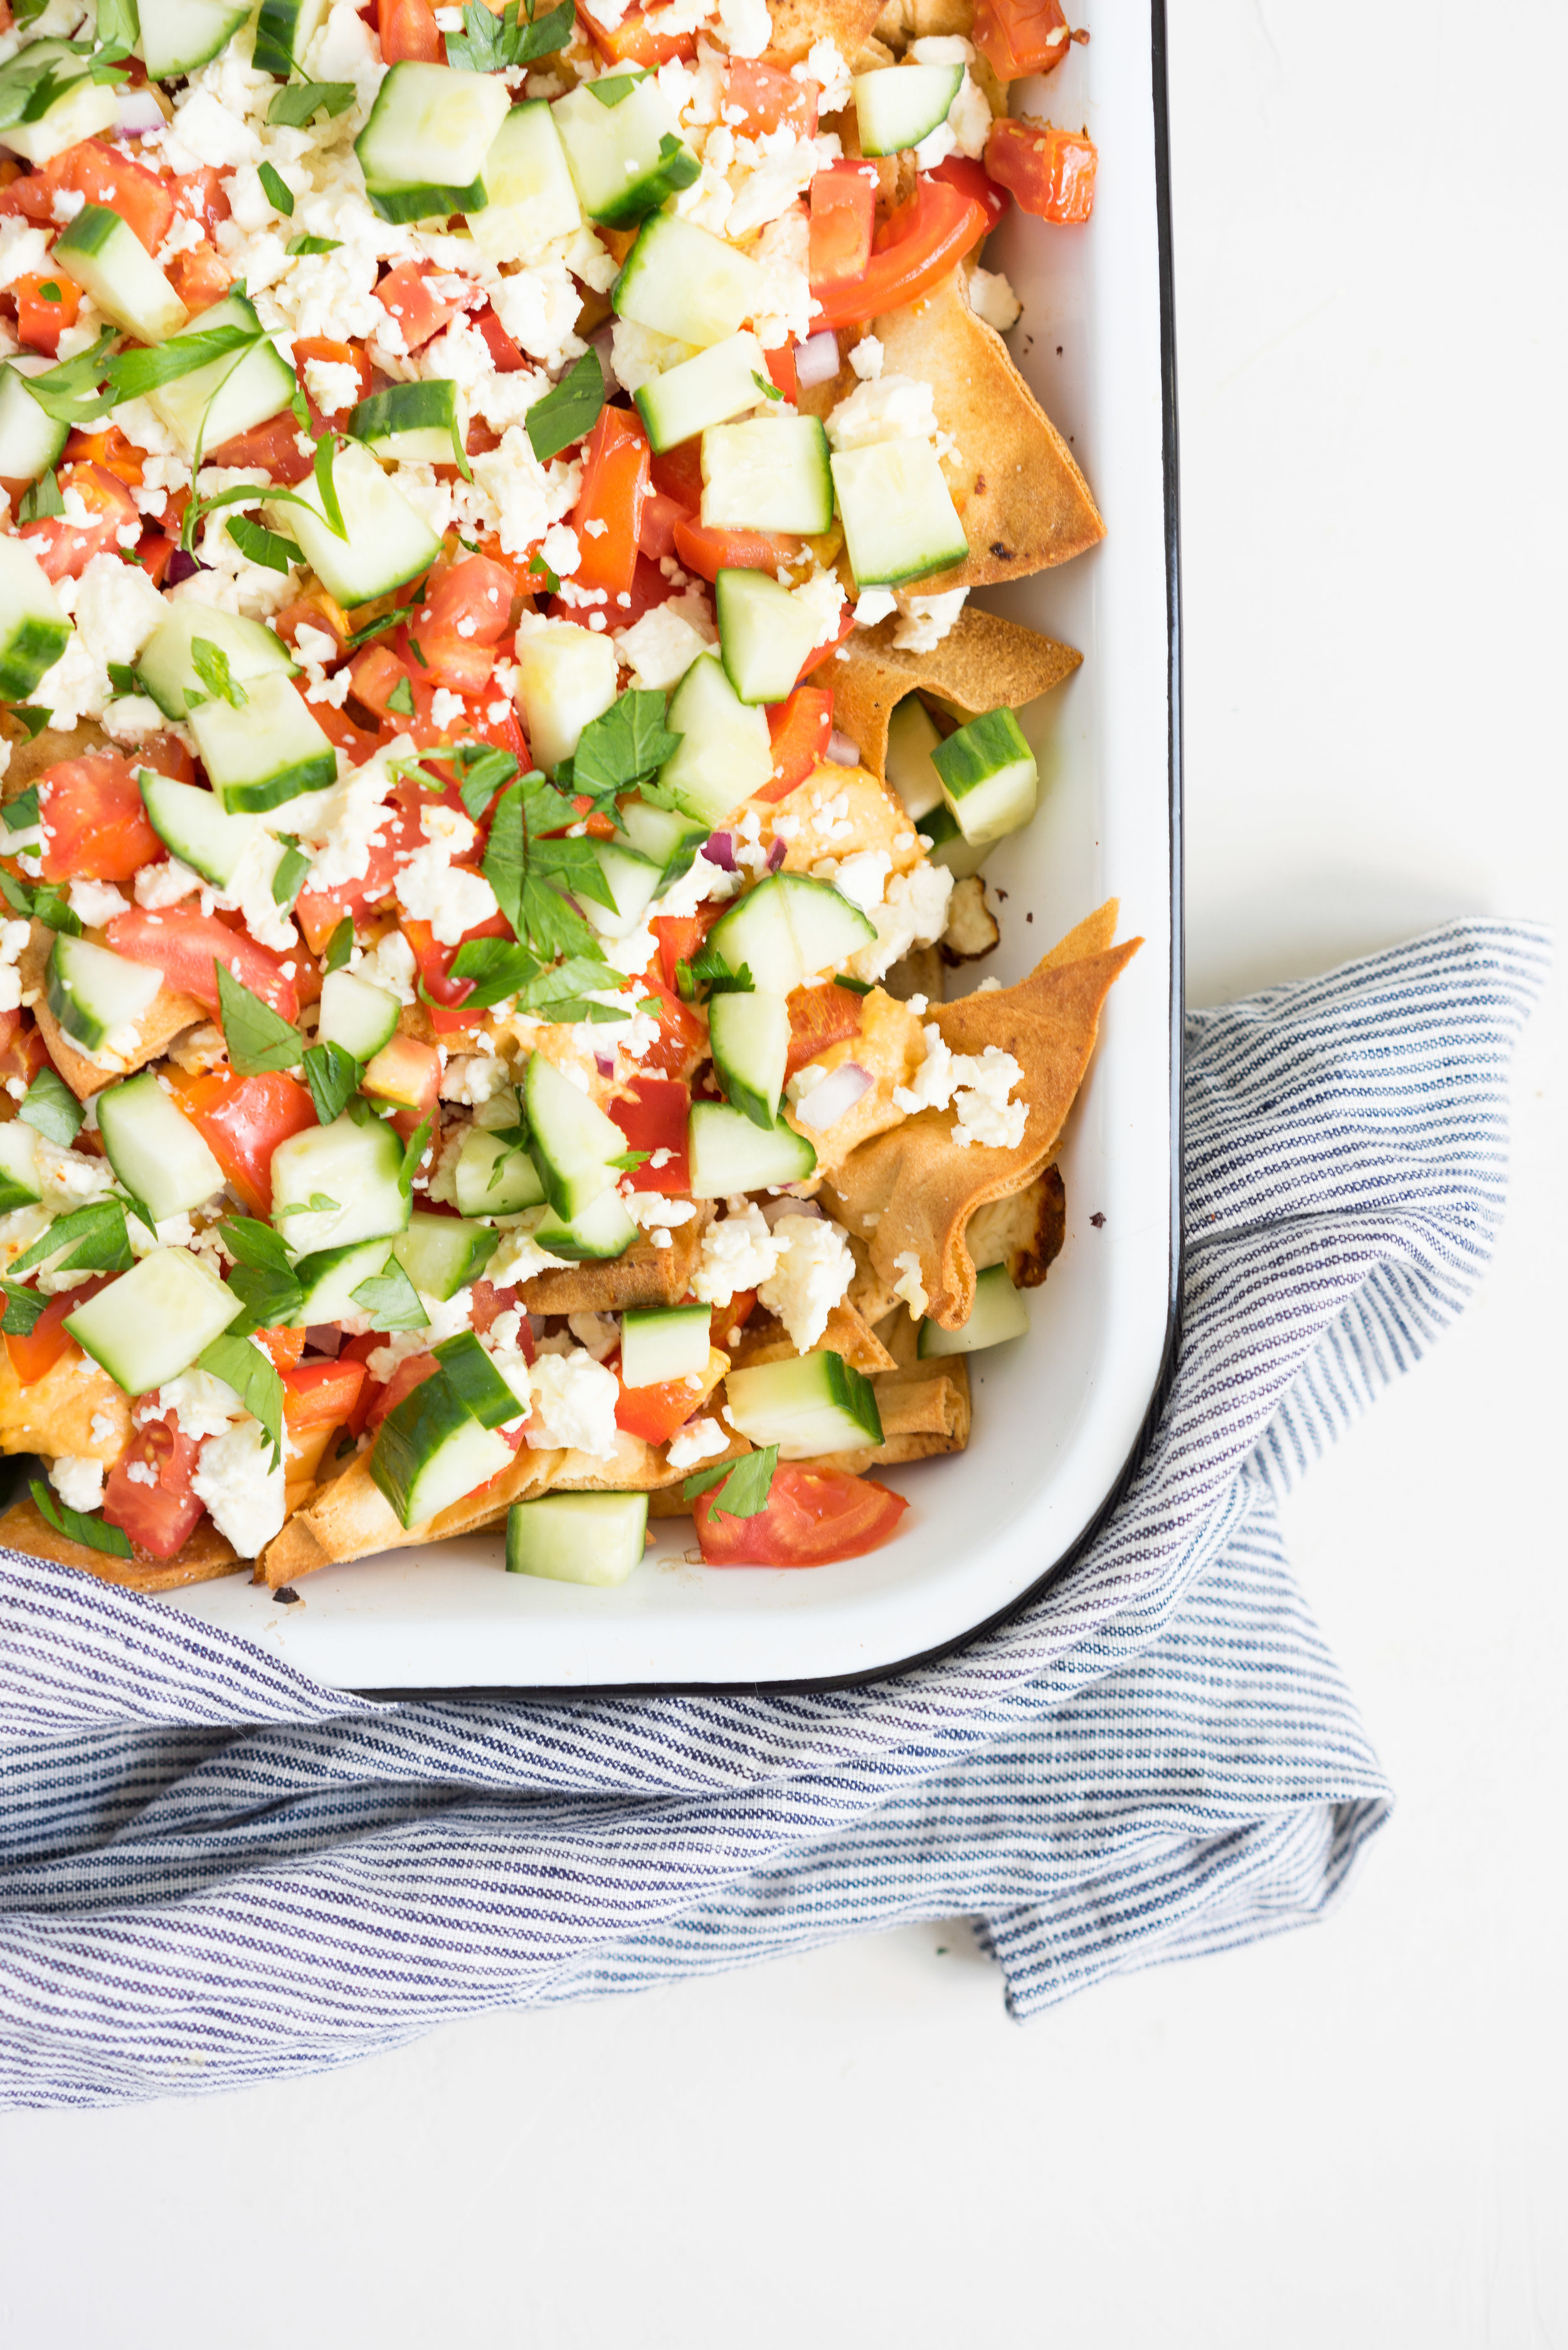 Greek Style Pita Bread Nachos - Homemade pita bread chips are layered with roasted red pepper hummus, feta cheese, red peppers, tomatoes and cucumbers, and loaded up with parsley. A delicious take on the classic nacho meal. #pitabread #greeknachos #hummusnachos #saladnachos #vegetarian